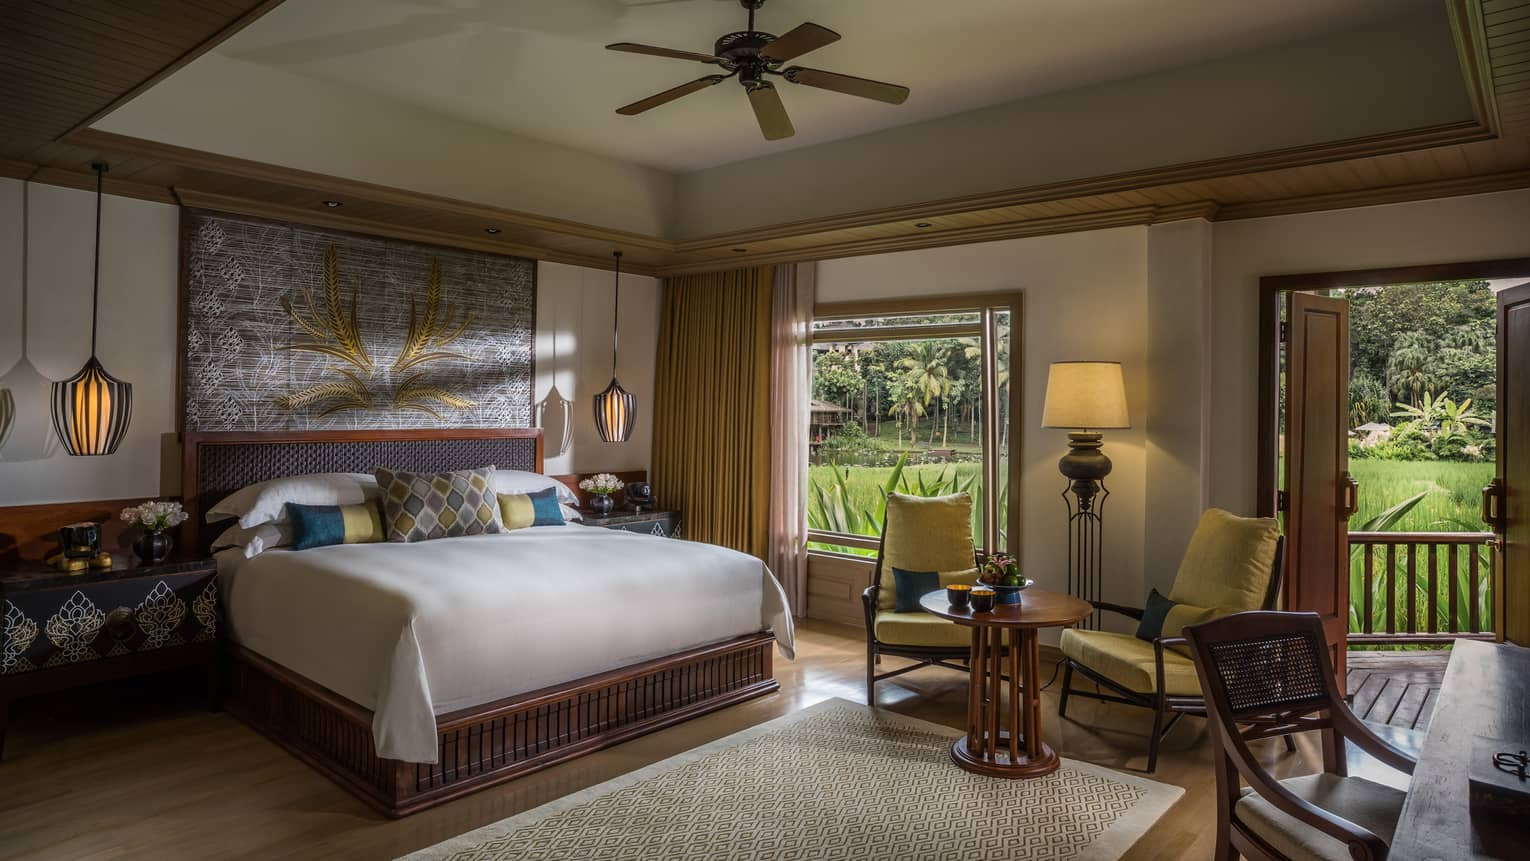 Rice Terrace Room bed with blue, gold accent pillows under painting, table by window with plantation view